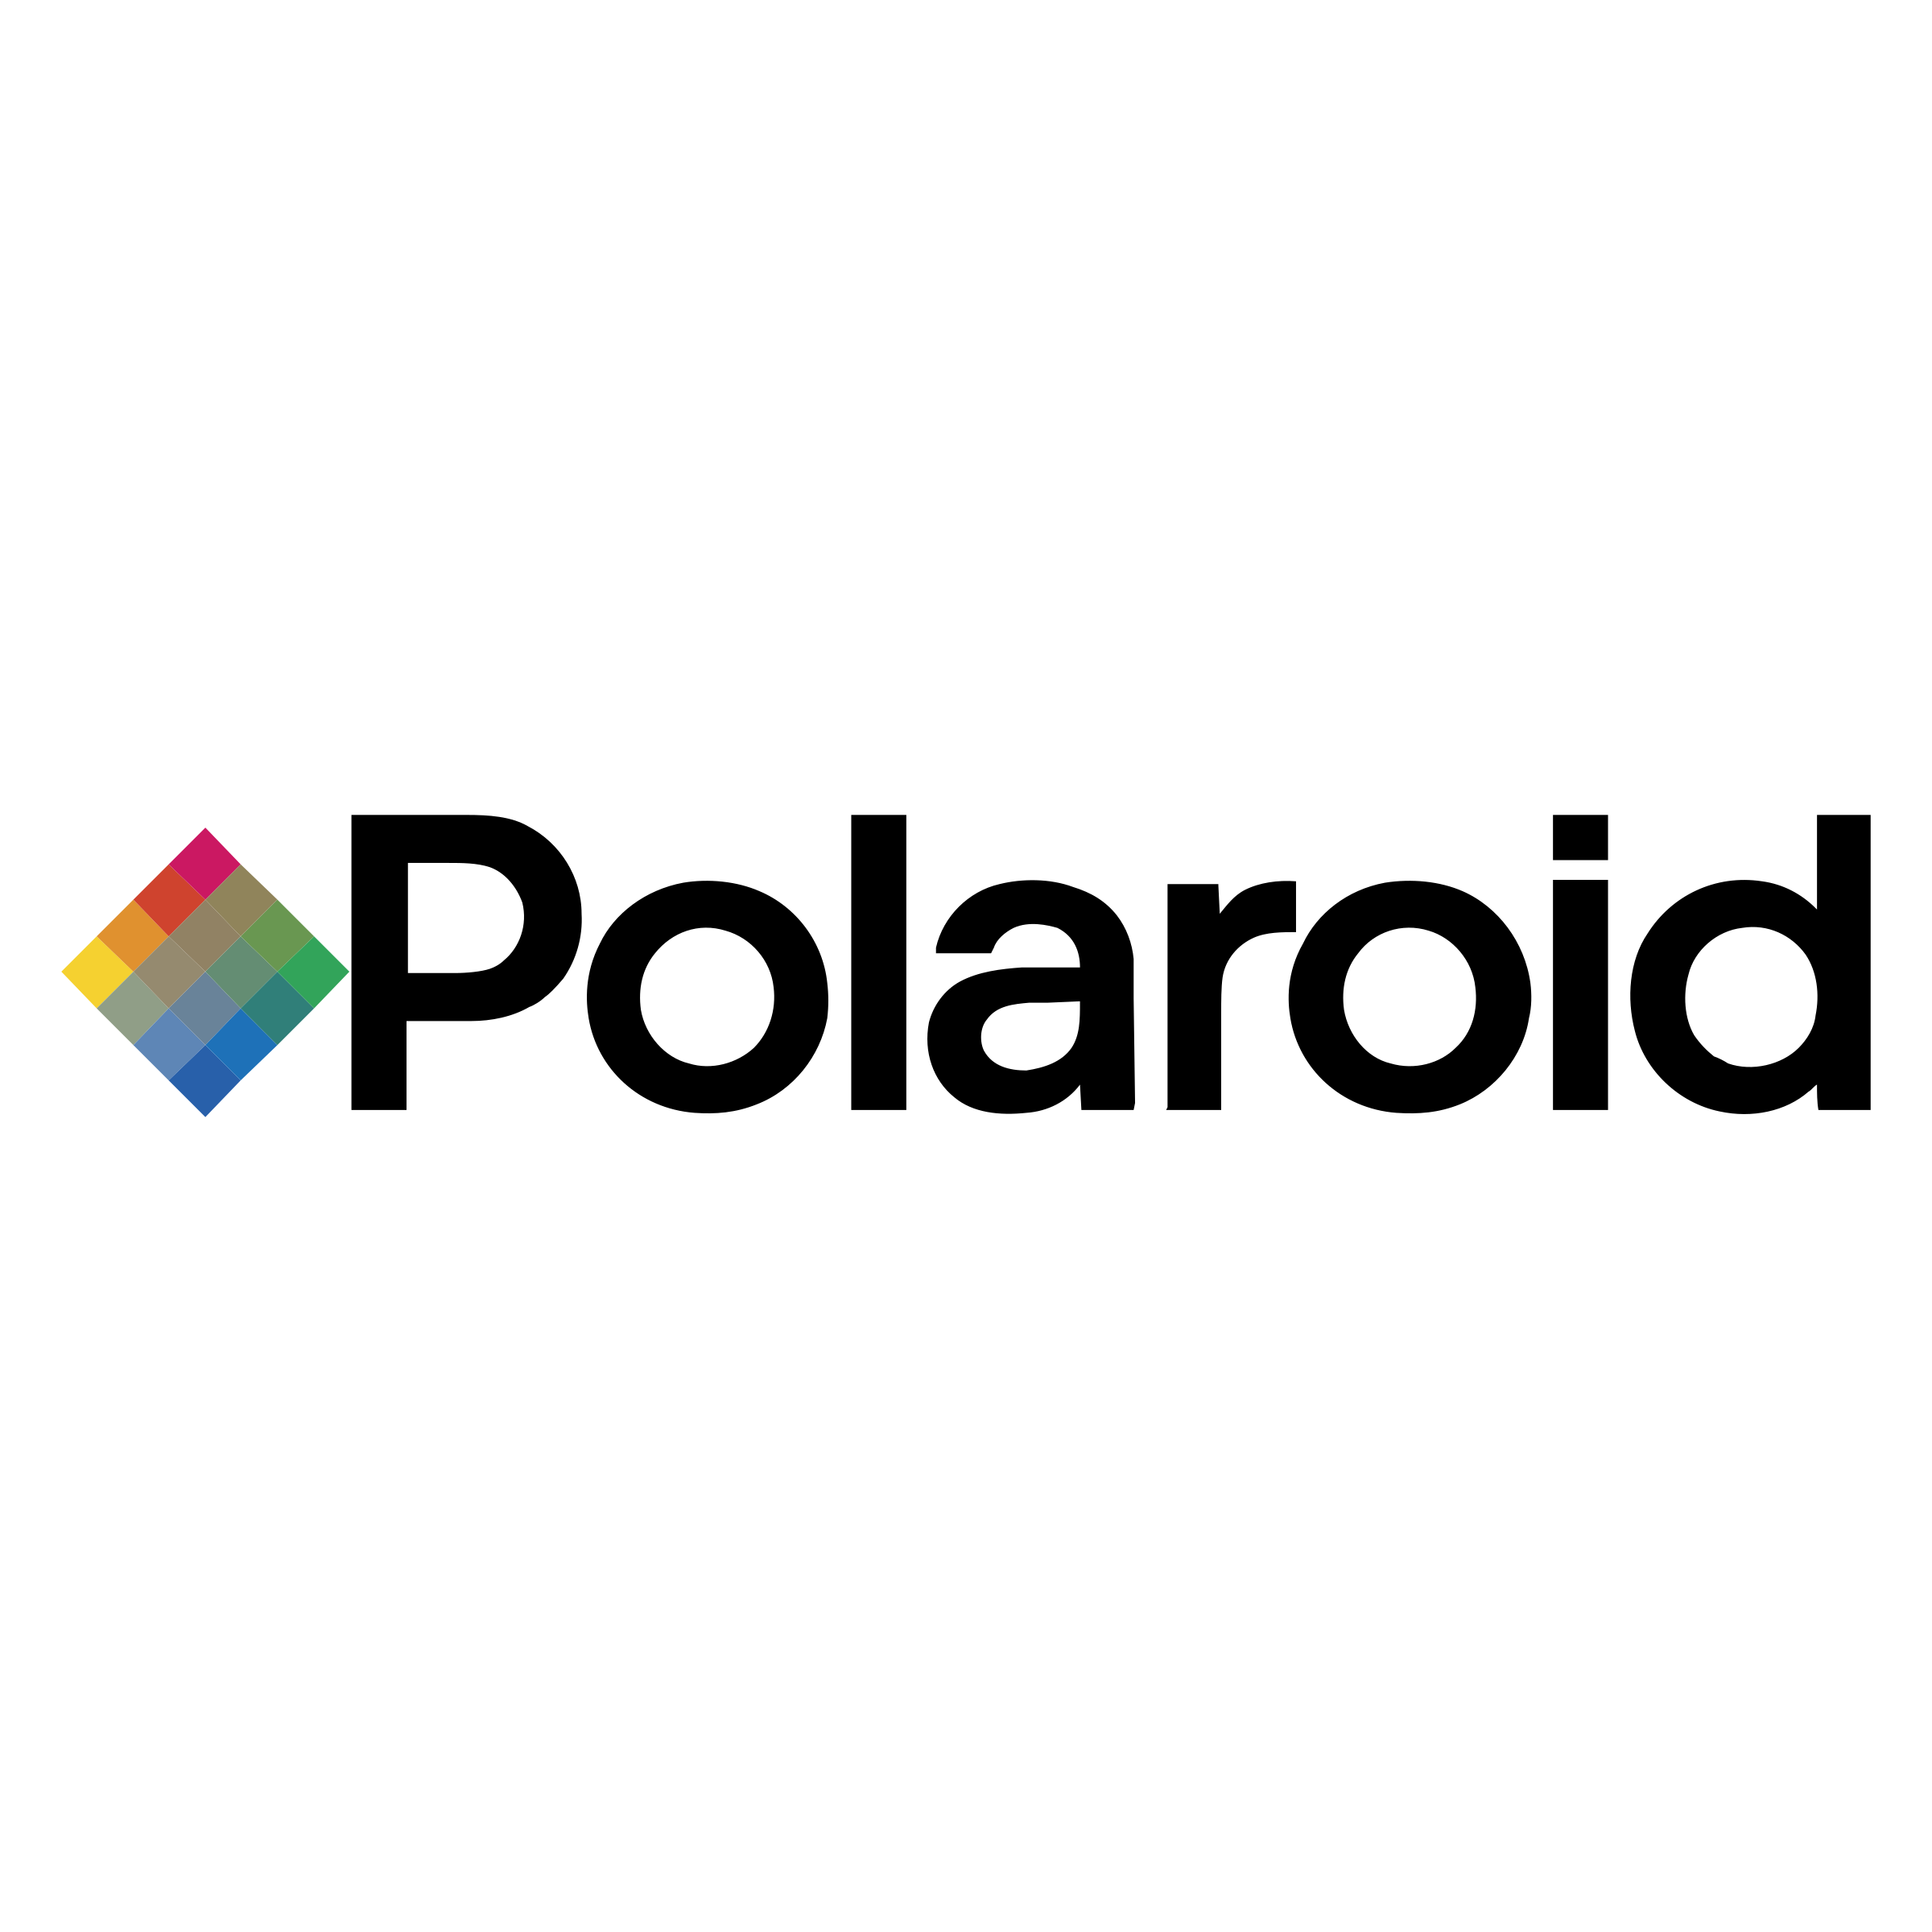 polaroid-logo-png-transparent